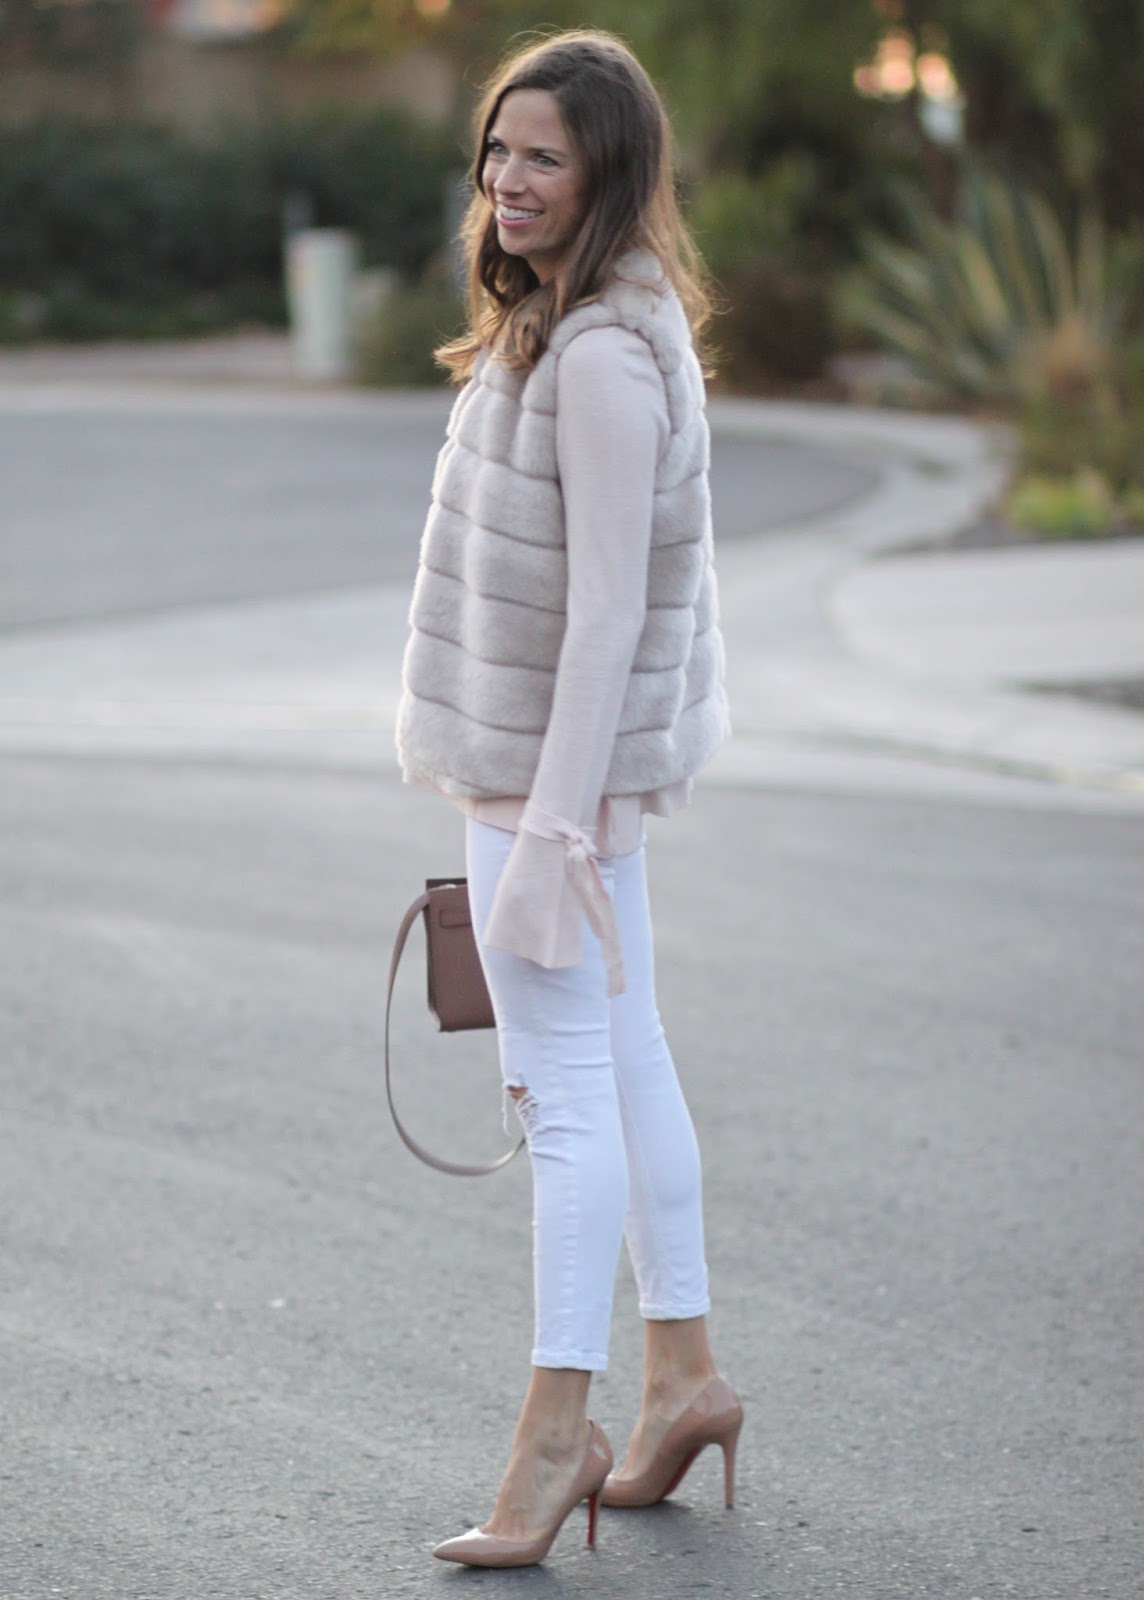 blush top and white jeans outfit